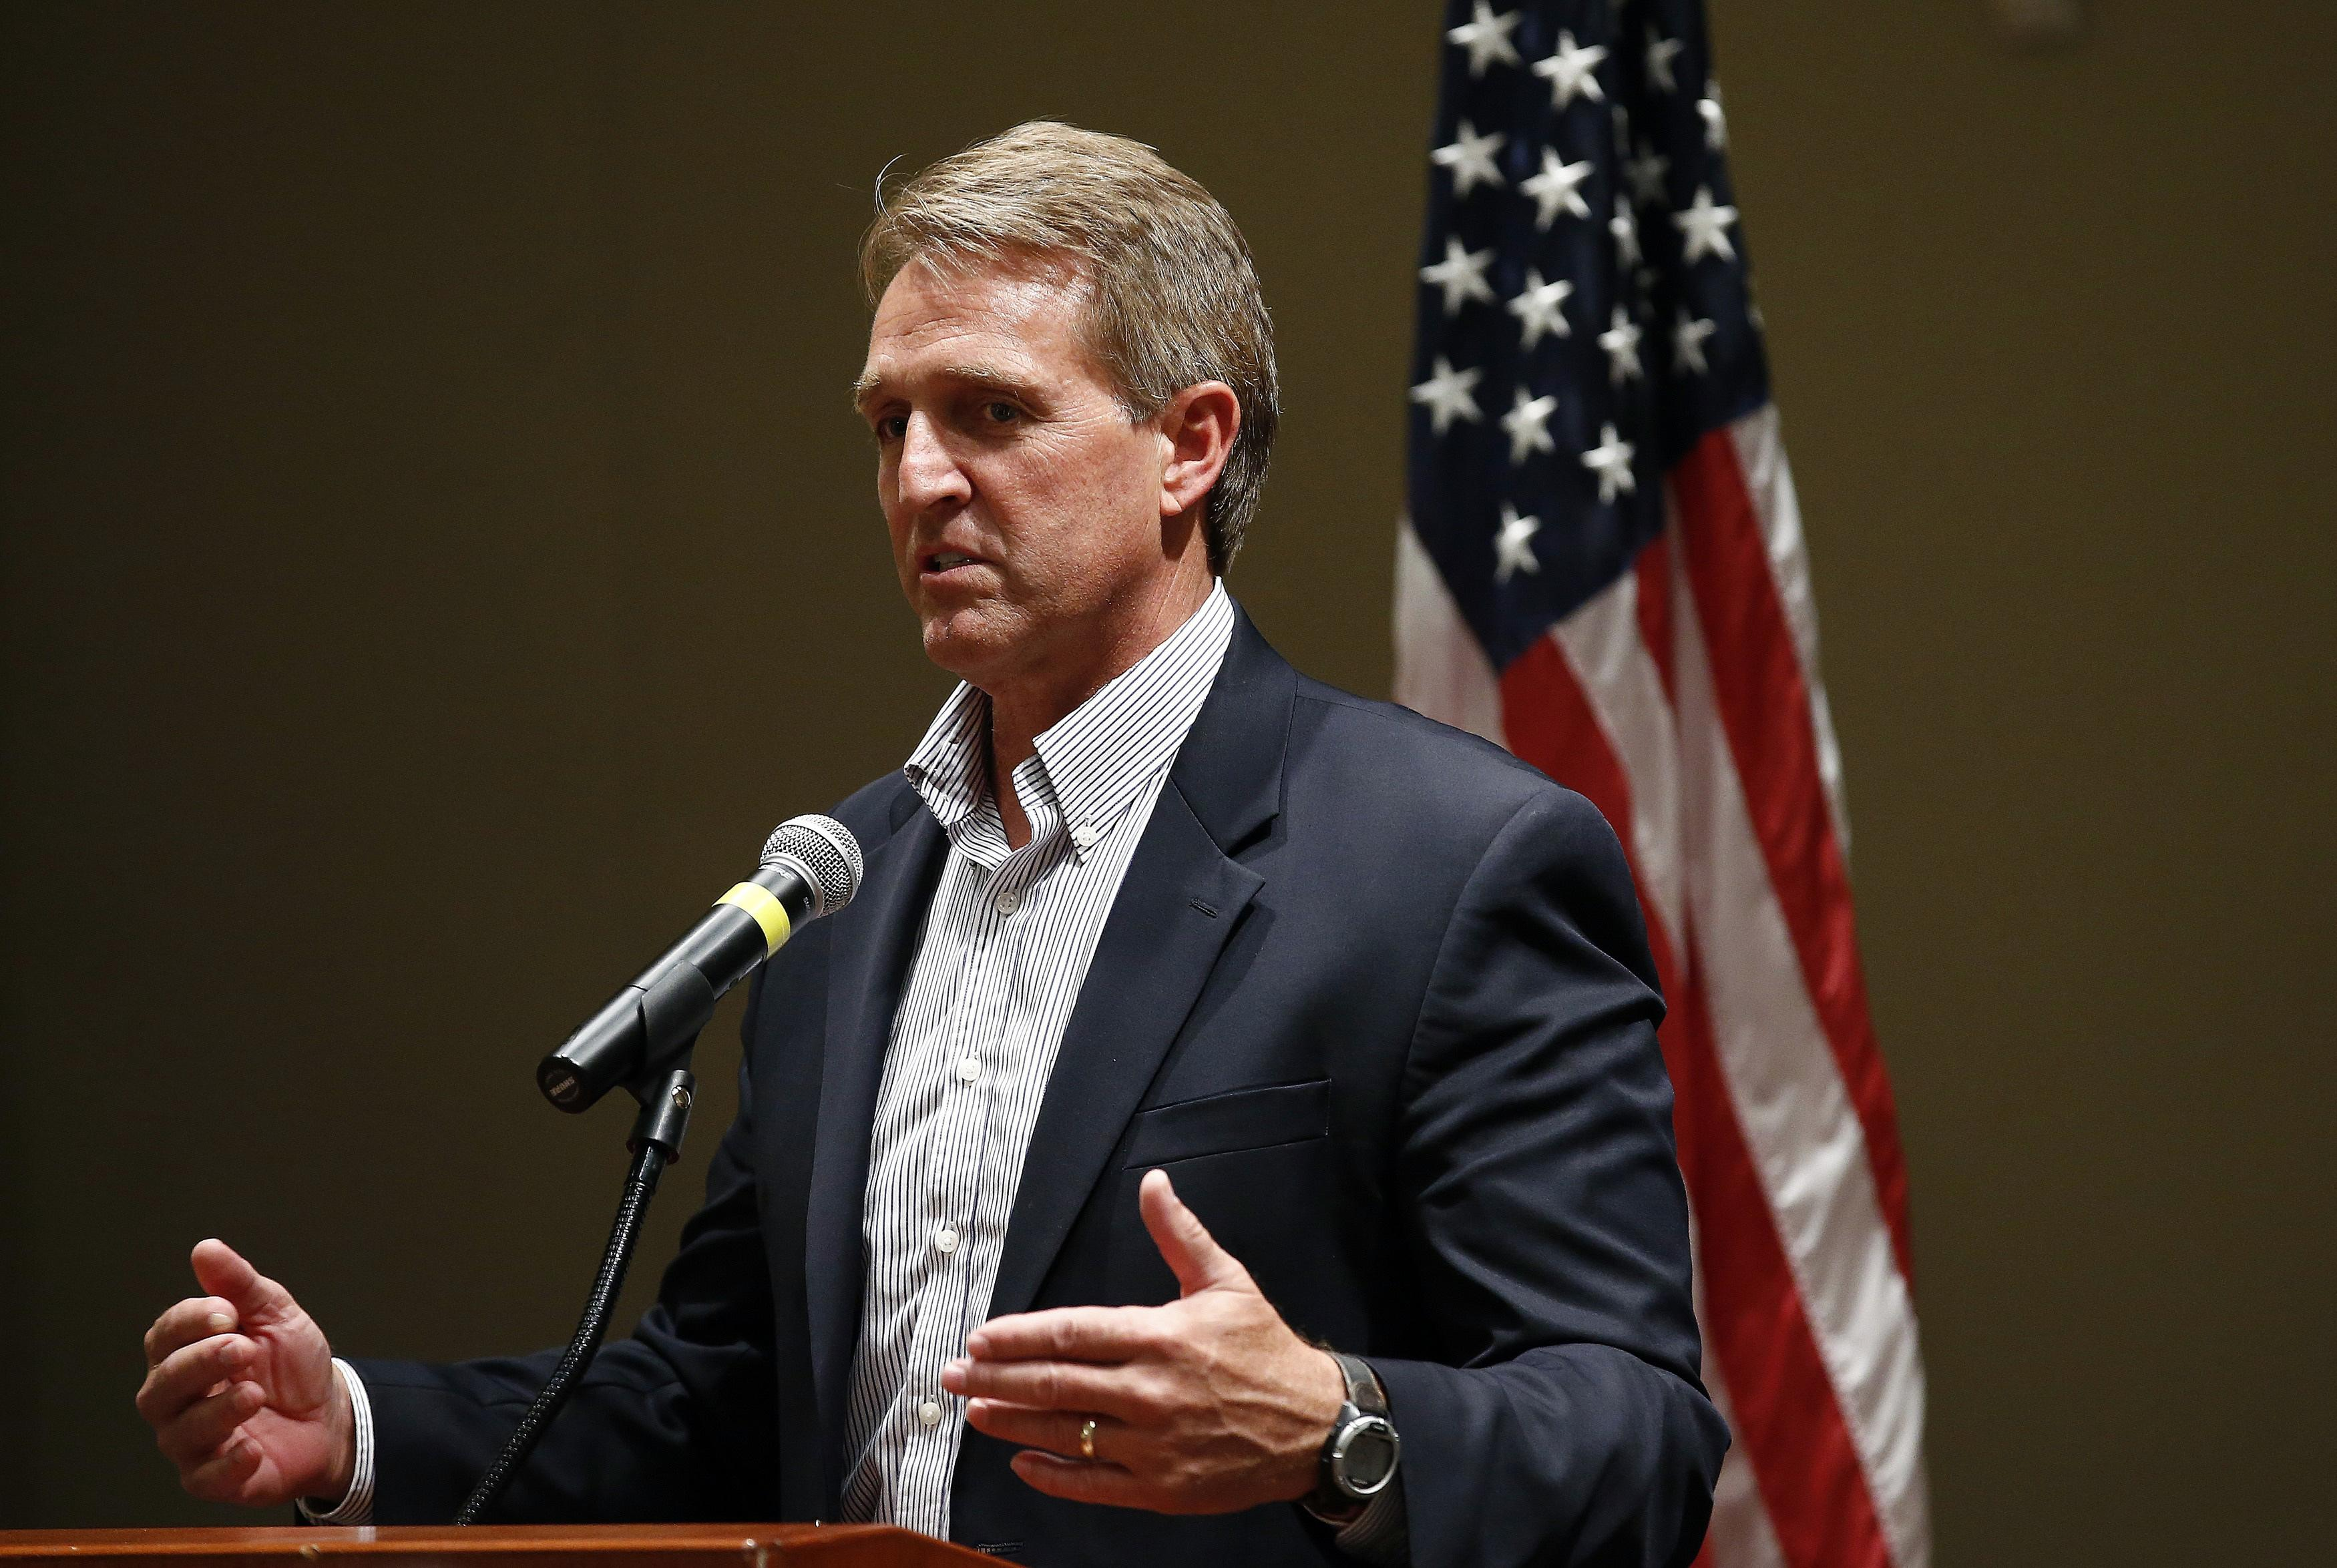 Republican Sen. Flake faults GOP, Democrat partisanship for Trump rise